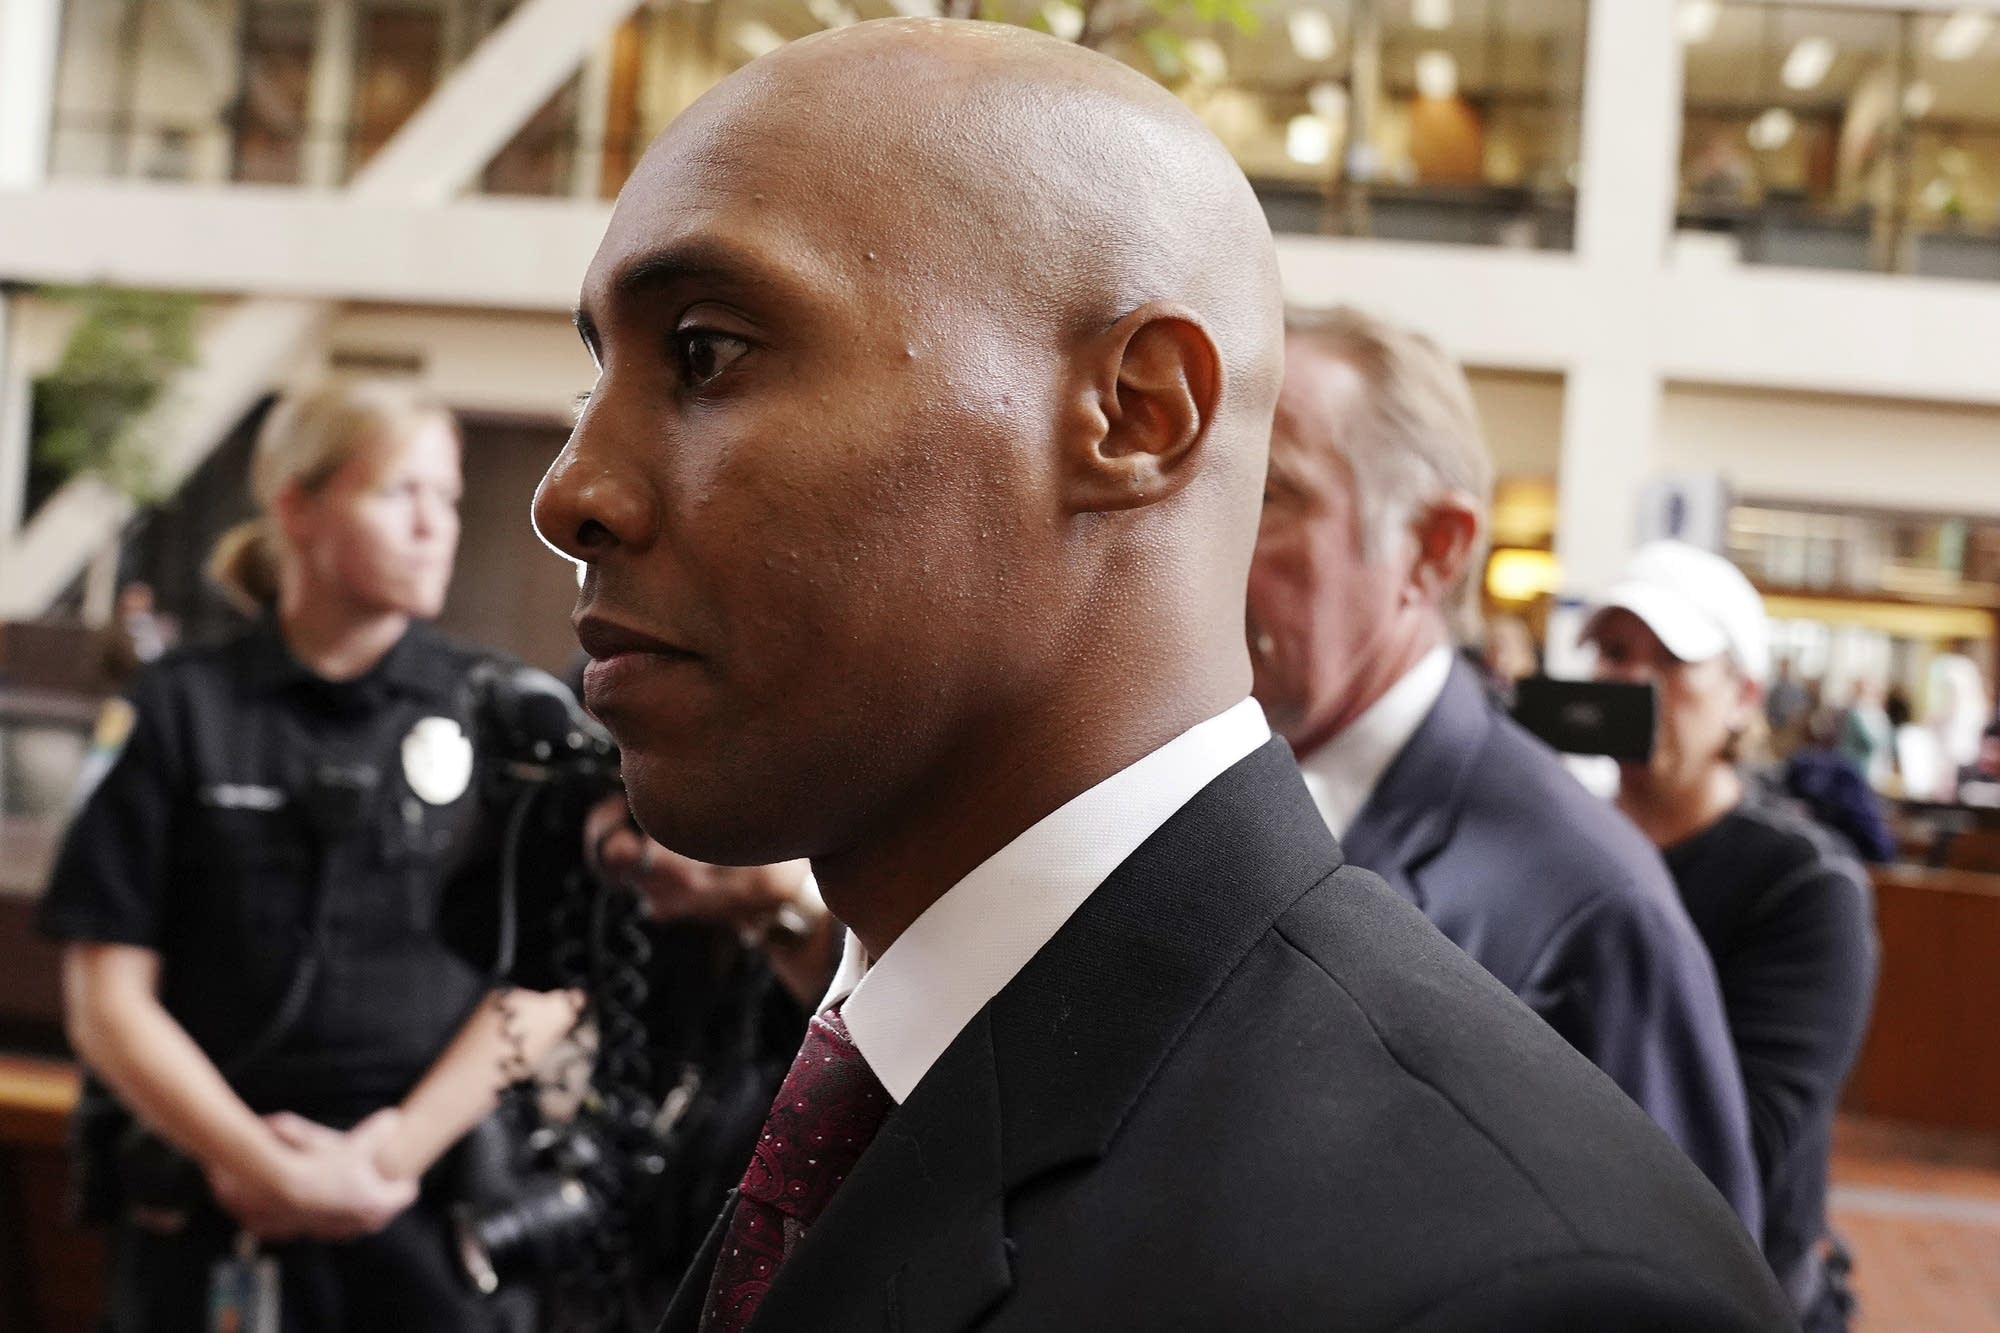 Mohamed Noor arrives at court hearing